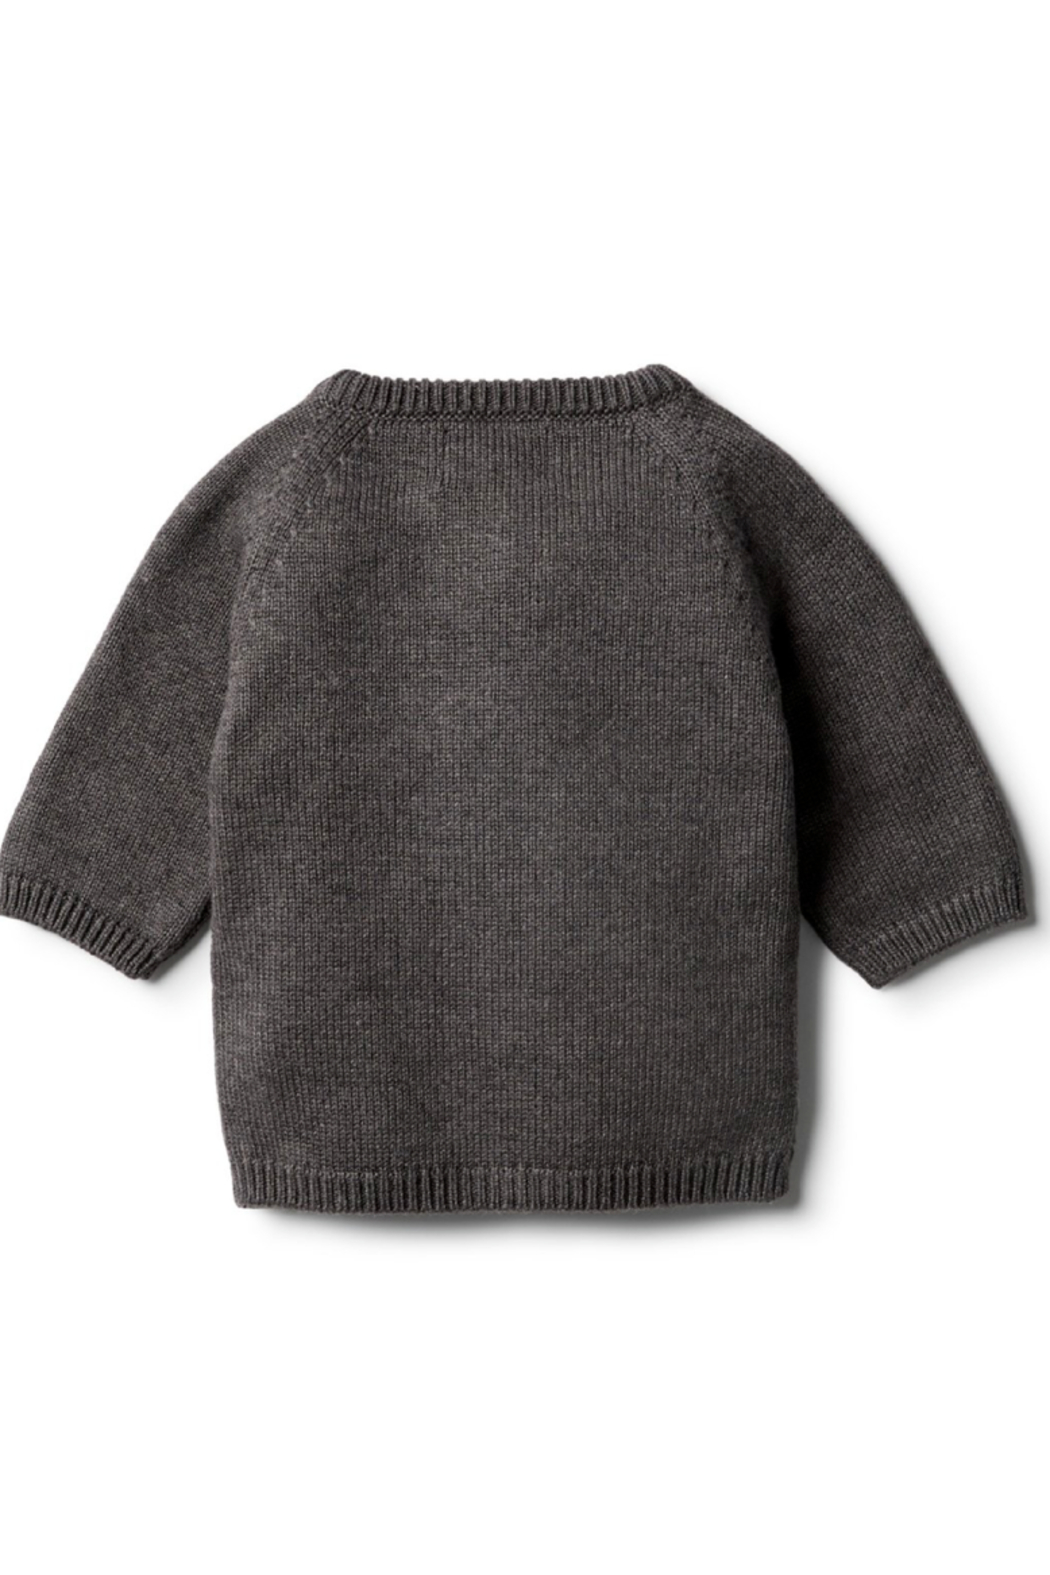 Wilson and Frenchy Knitted Zip Up Cardigan - Front Full Image